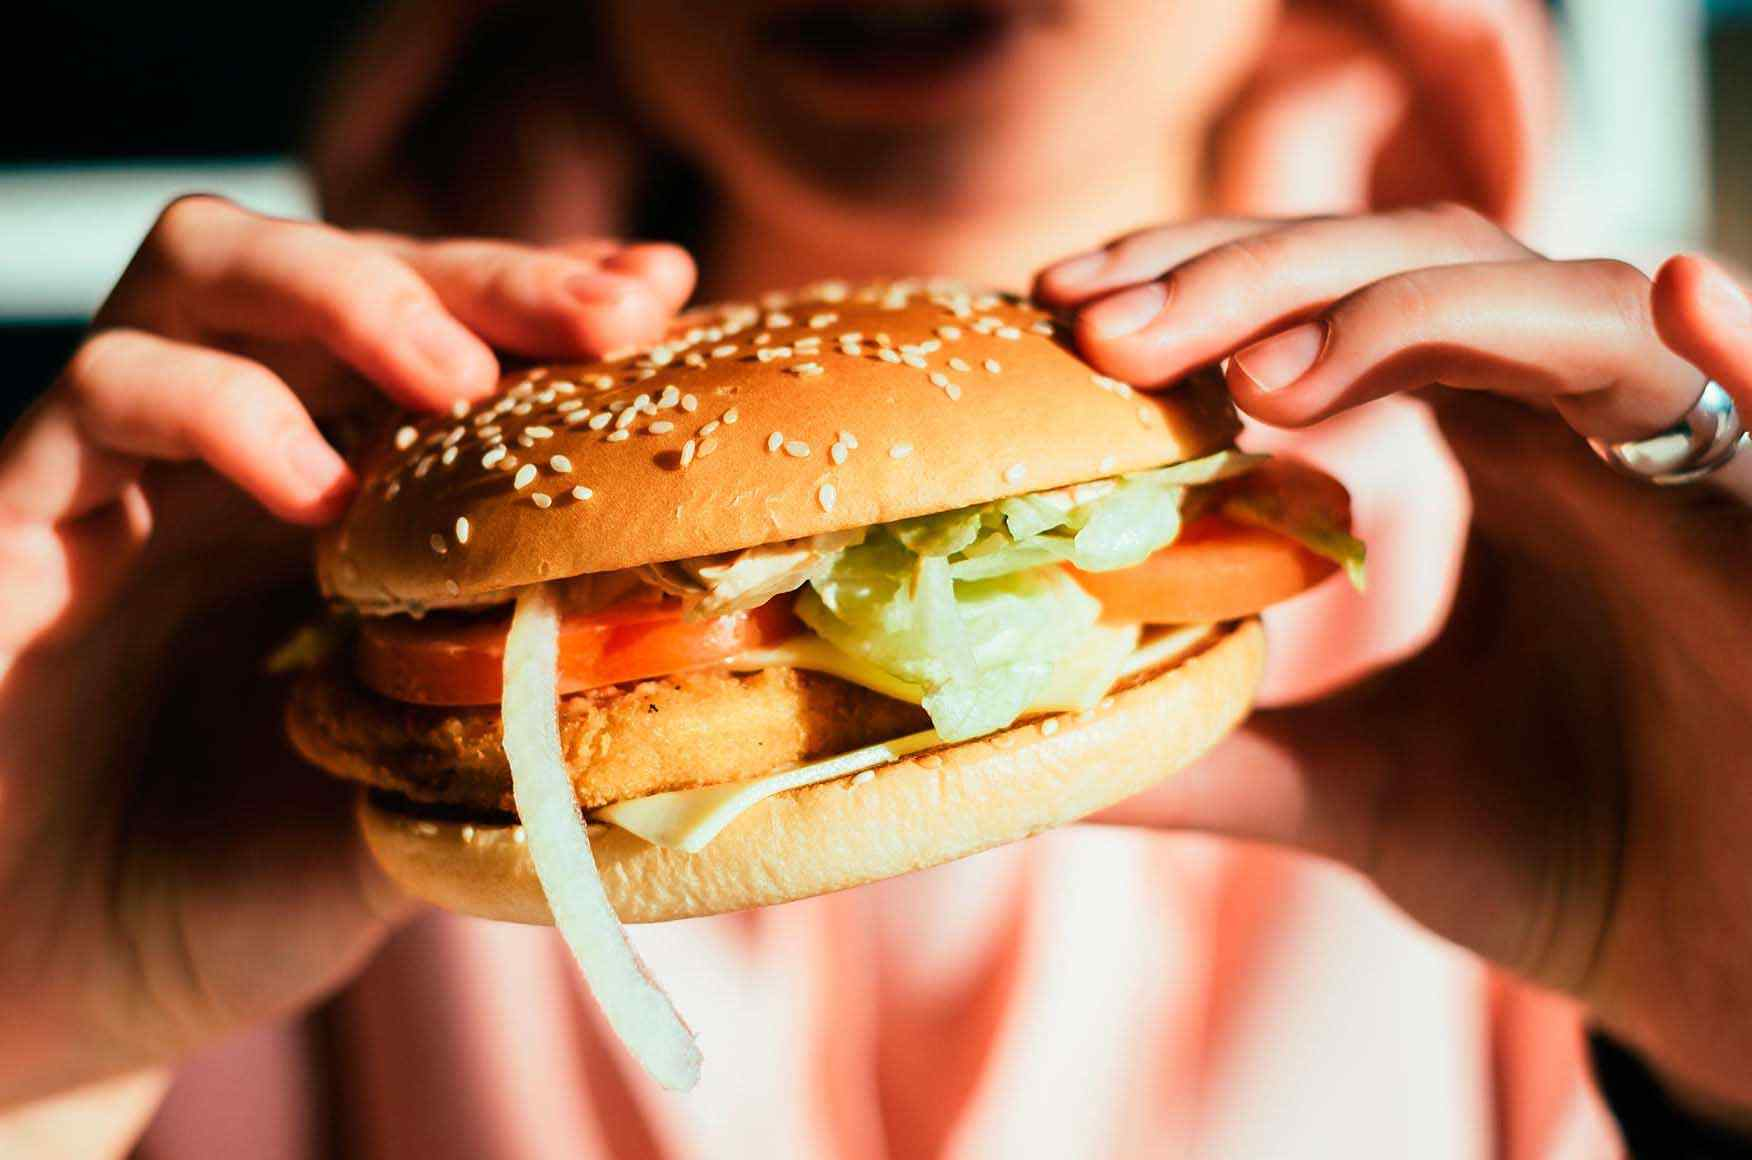 Don't Eat Fast Food for Better Fertility